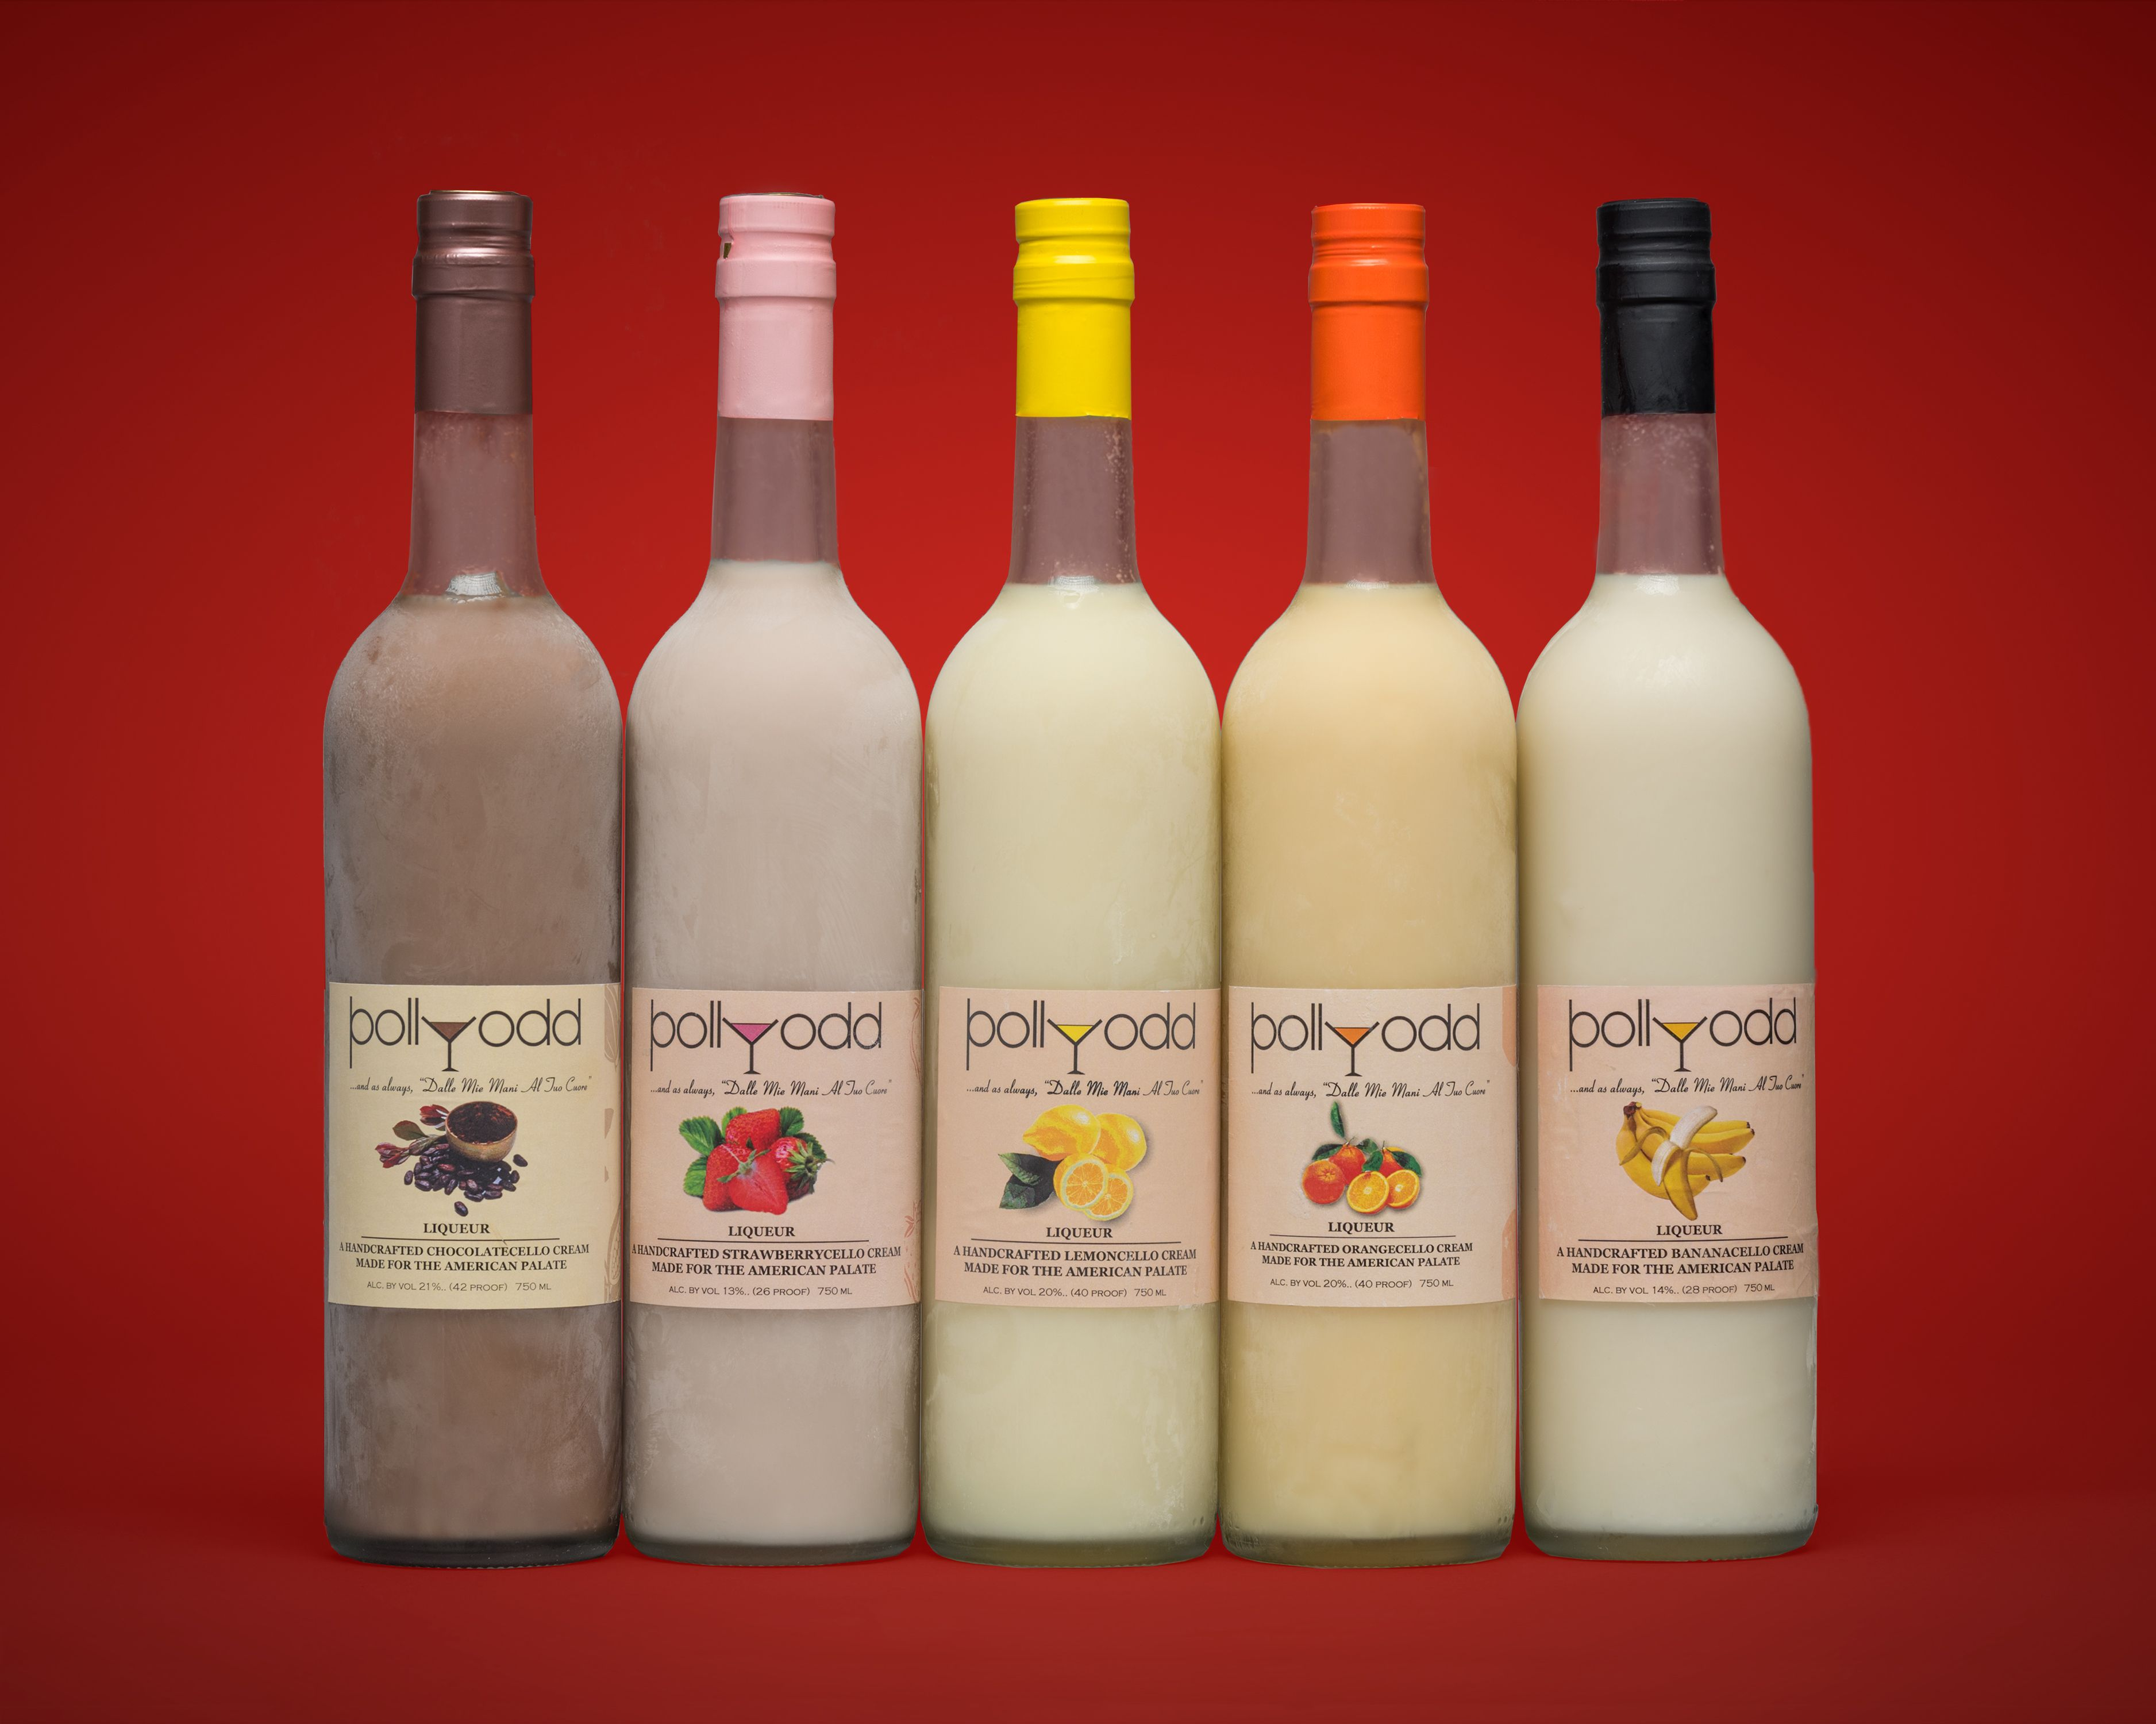 Pollyodd 5 Cream Based Cello Flavors Fantastic Liqueurs For Cocktails Made In Philadelphia Wine Bottle Cocktail Making Rose Wine Bottle